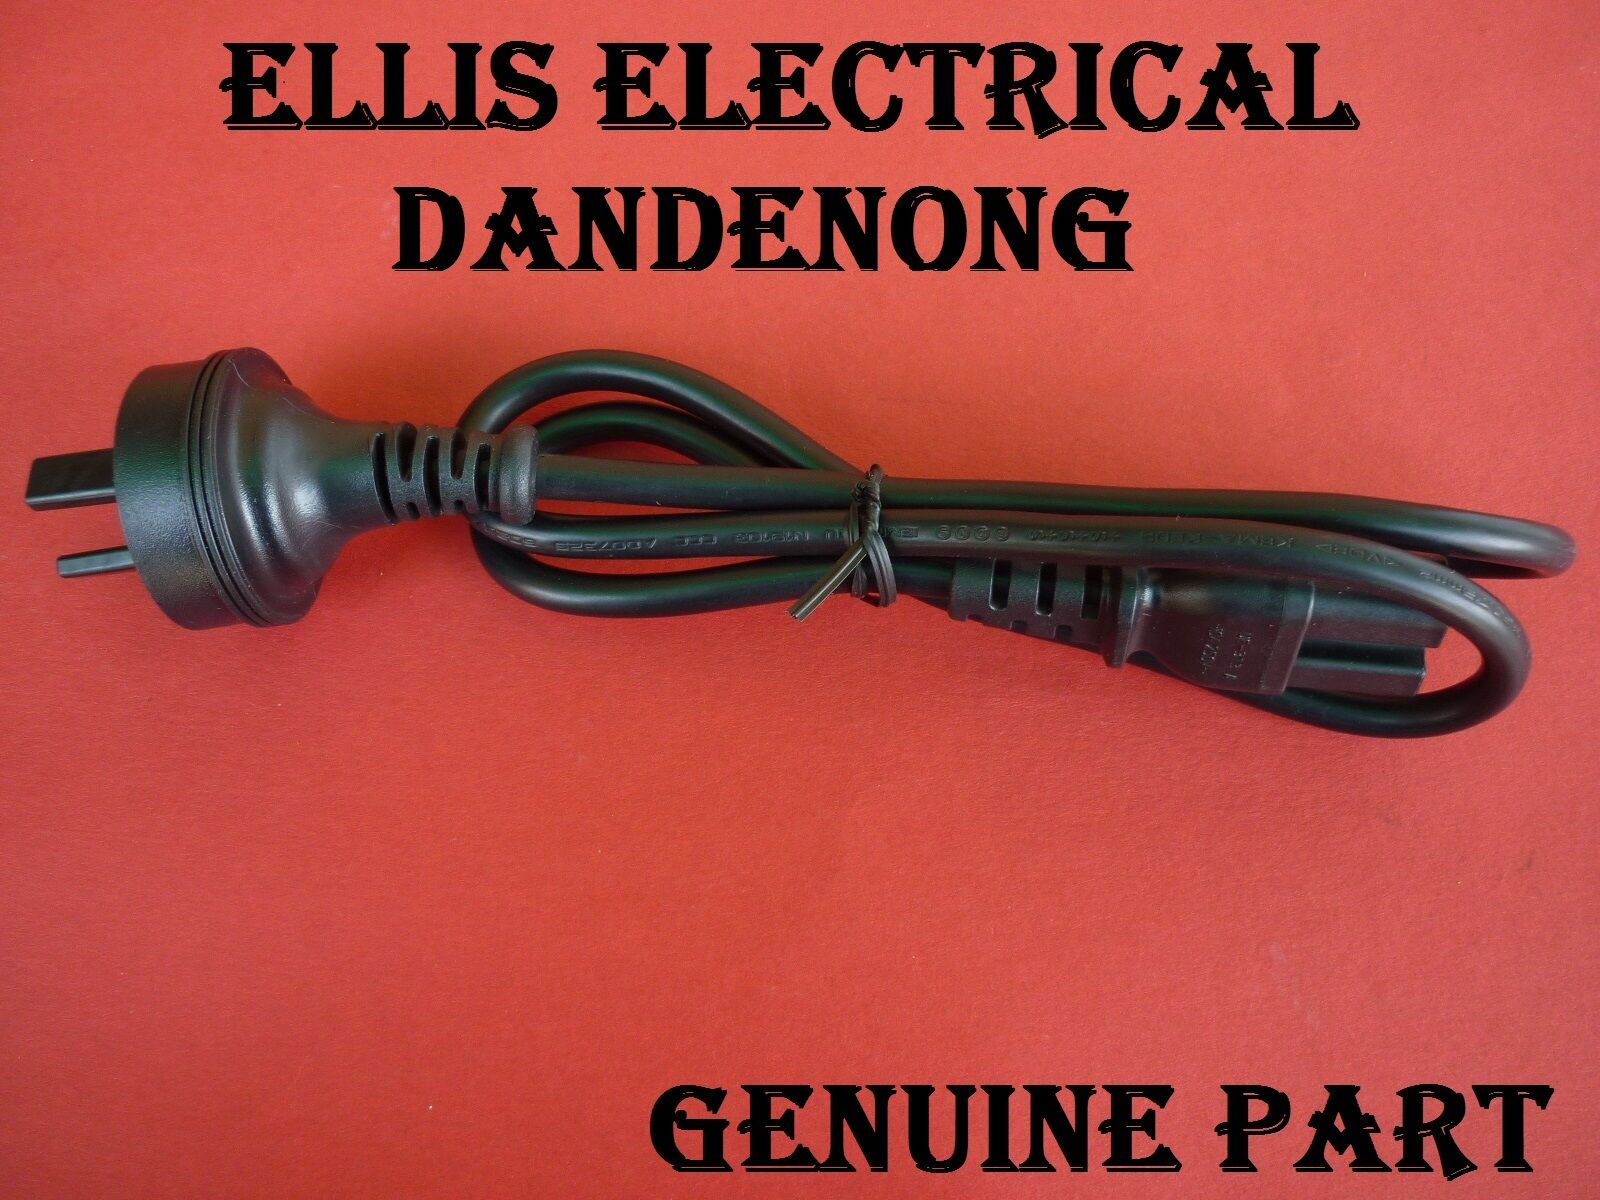 Sunbeam Slow Cooker Power Cord / Cable, Part Number: HP3510103 Ellis Electrical